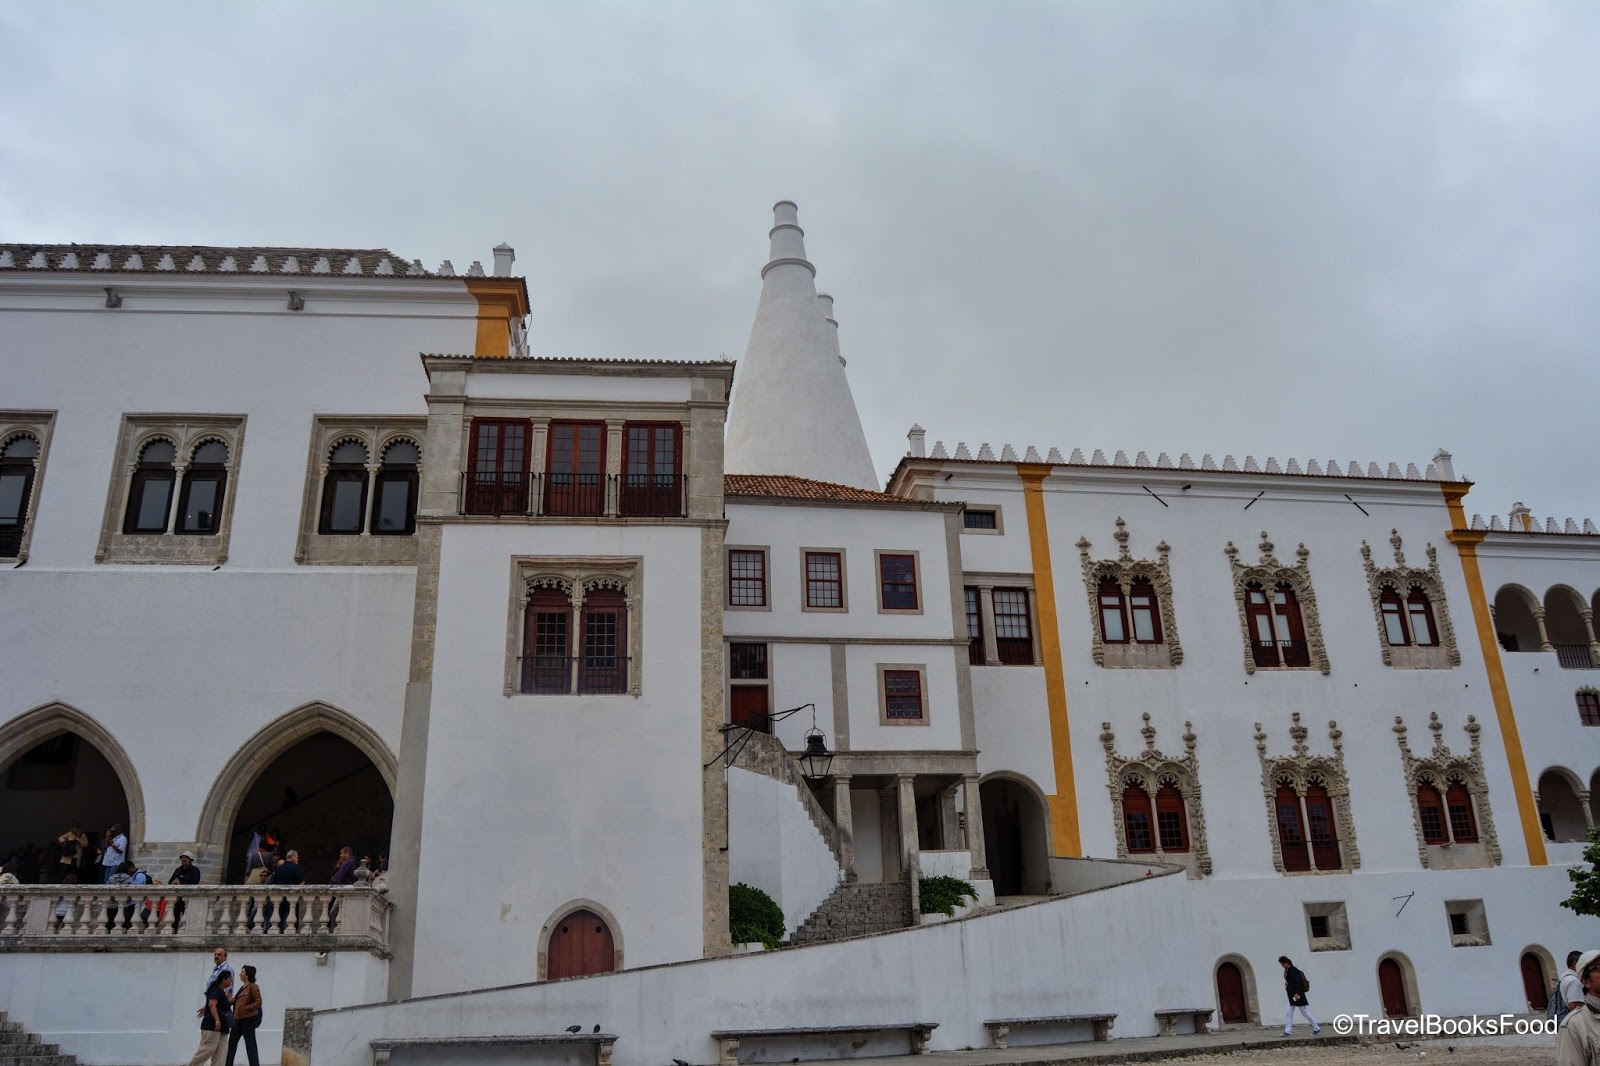 Half Day Trip To Sintra, Cabo Da Roca And Cascais, Portugal from Lisbon